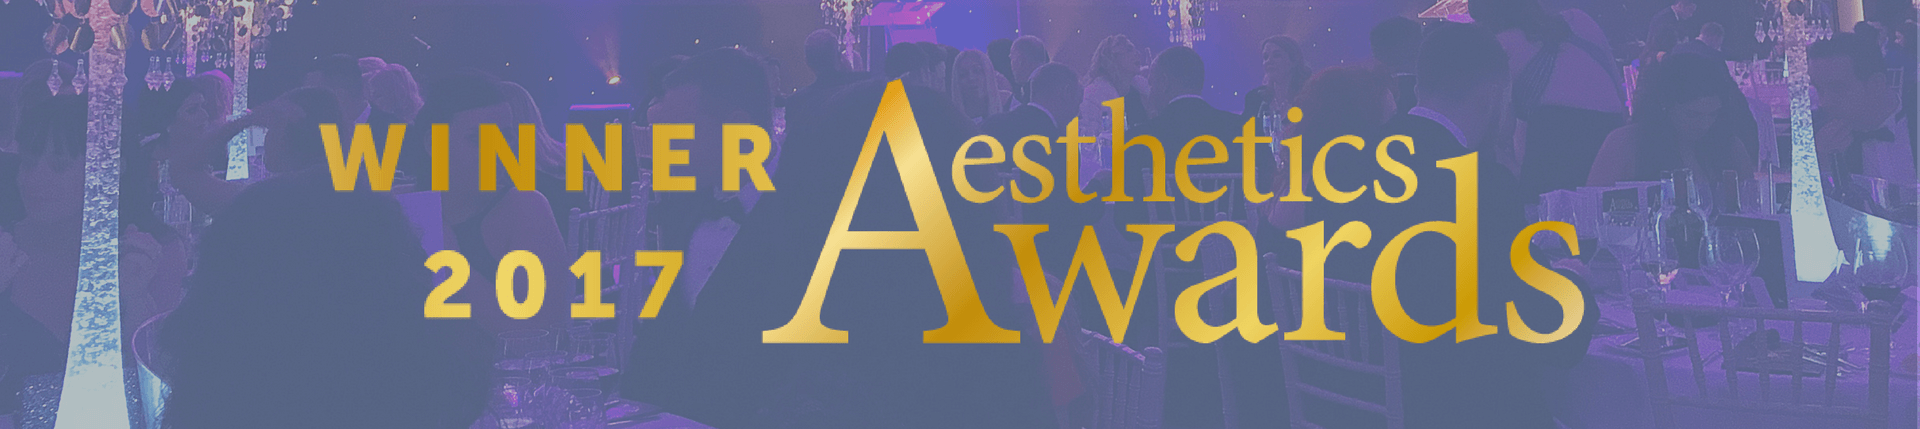 Aesthetic awards 2017